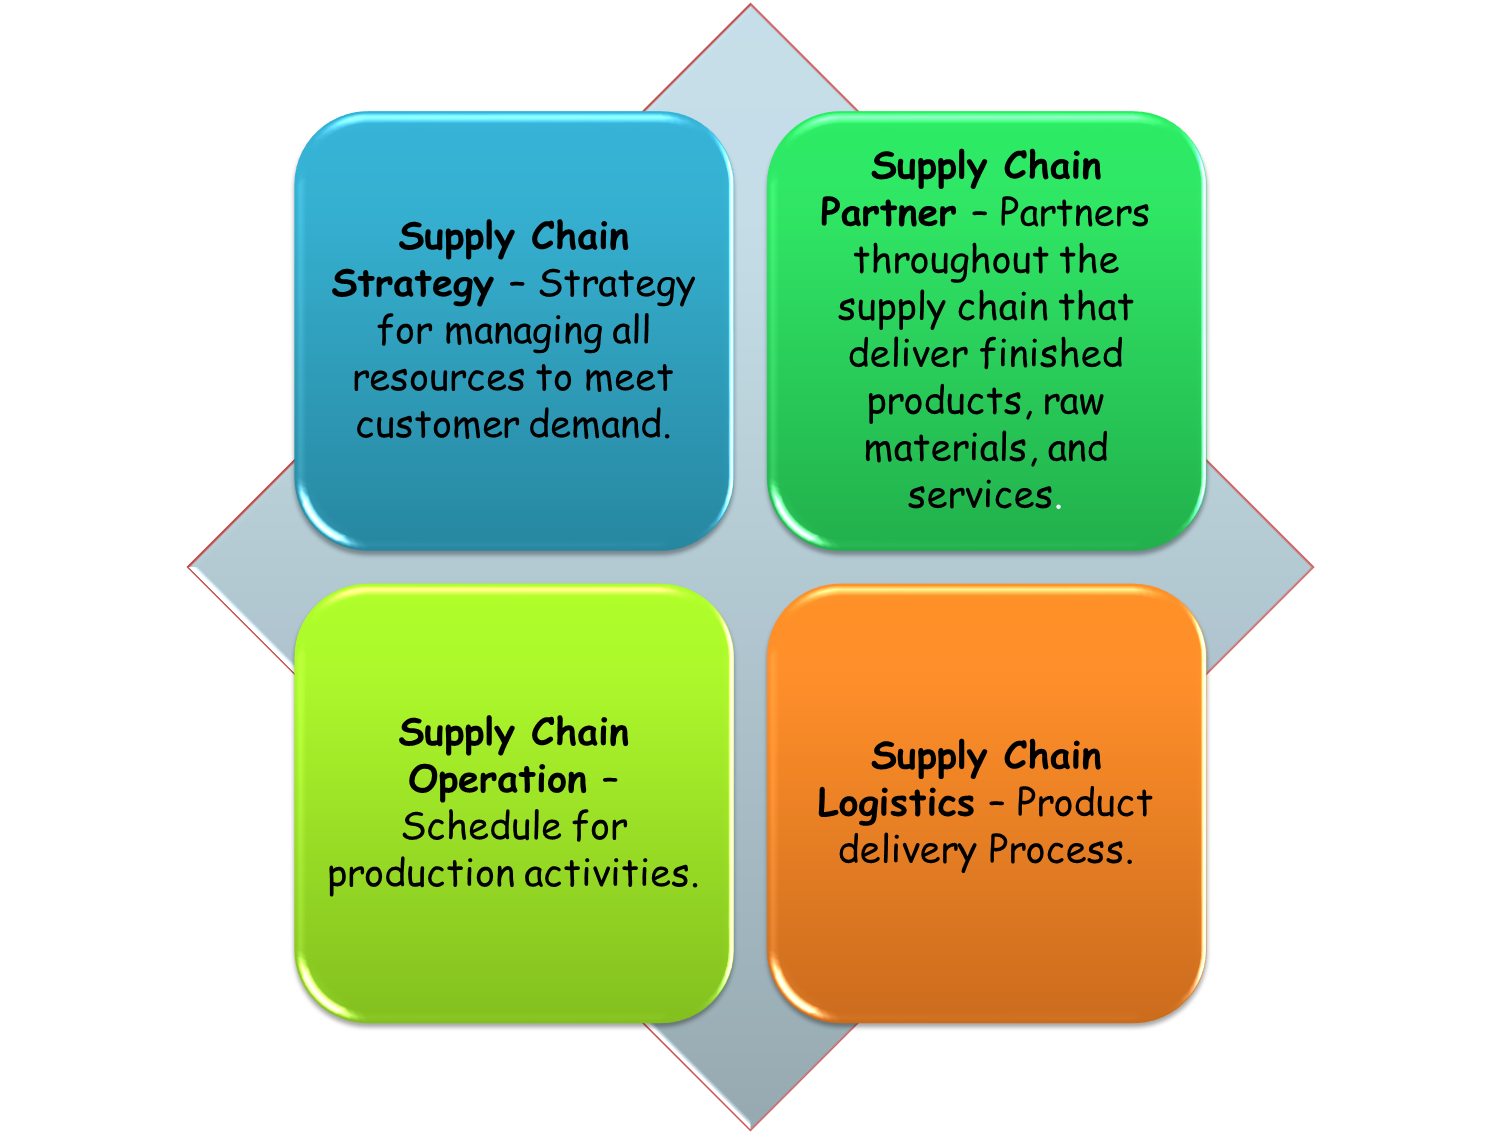 walmart strategic initiatives Walmart and jdcom, china's largest e-commerce company by revenues, announced that they are expanding the strategic partnership formed last year by further integrating their respective platforms, supply chains and customer resources.